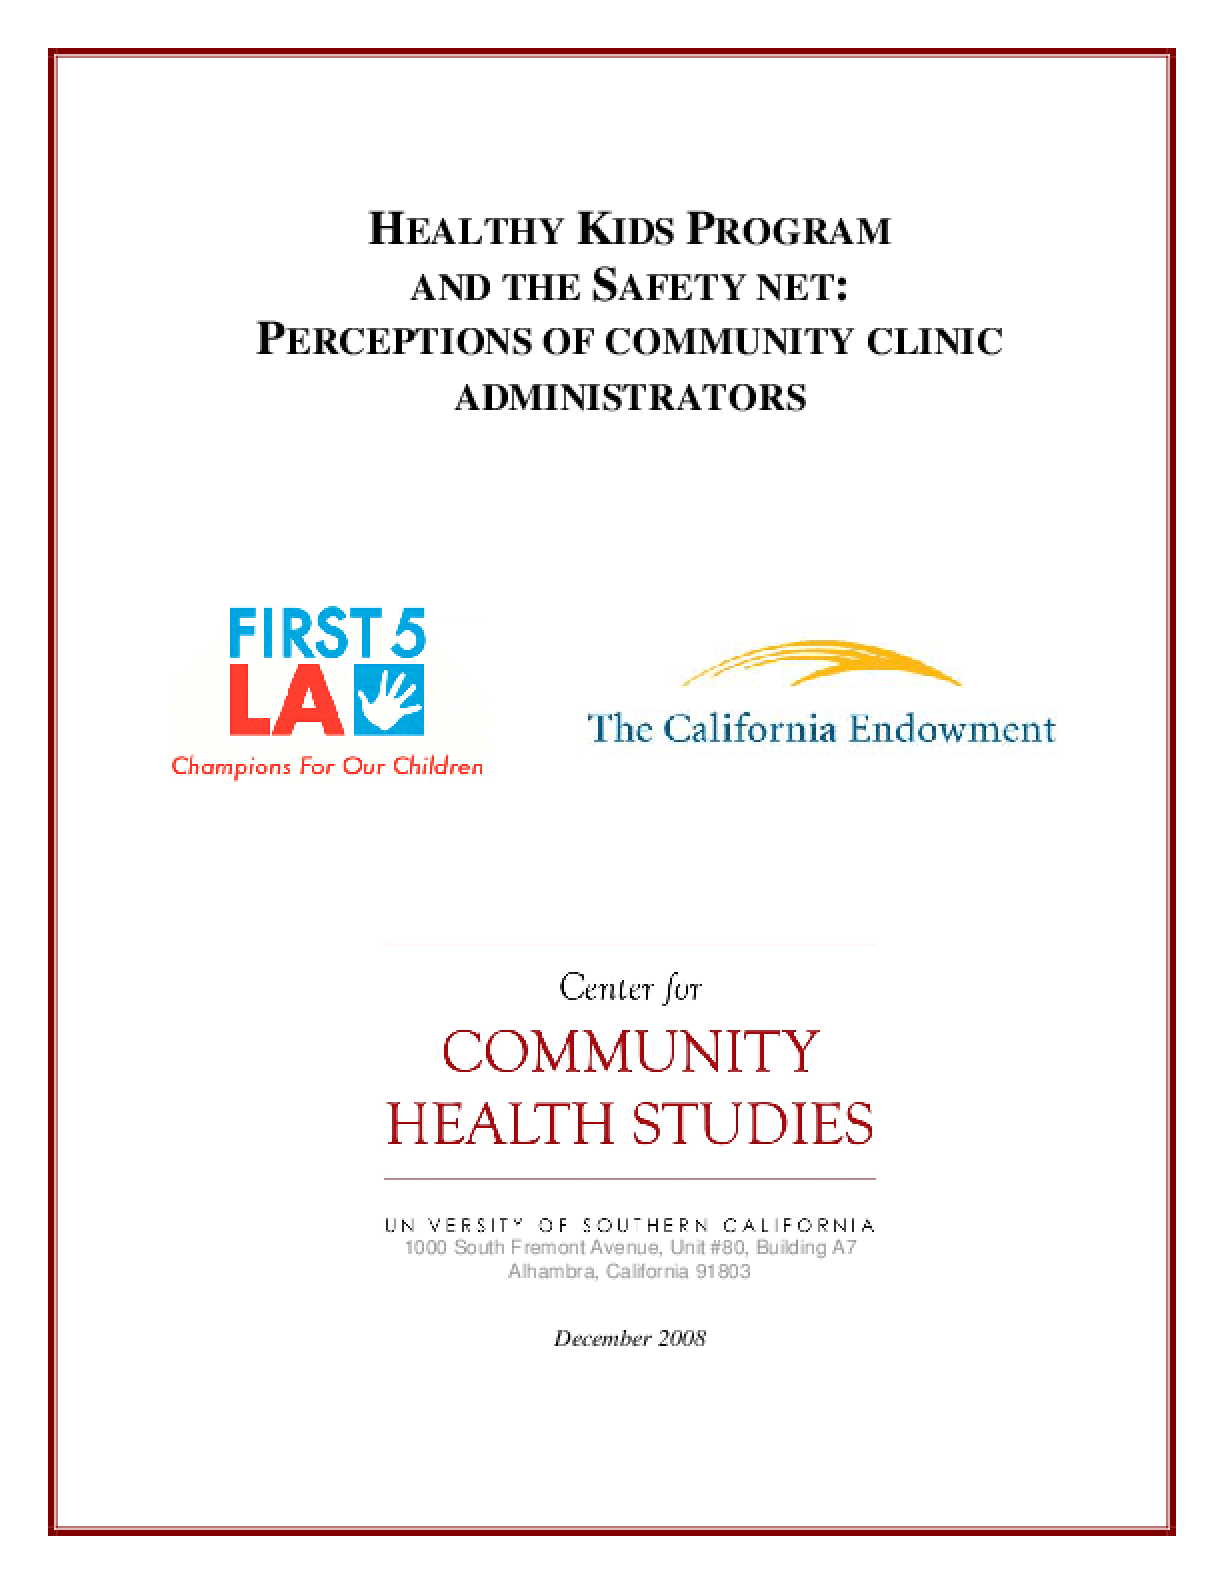 Healthy Kids Program and the Safety Net: Perceptions of Community Clinic Administrators